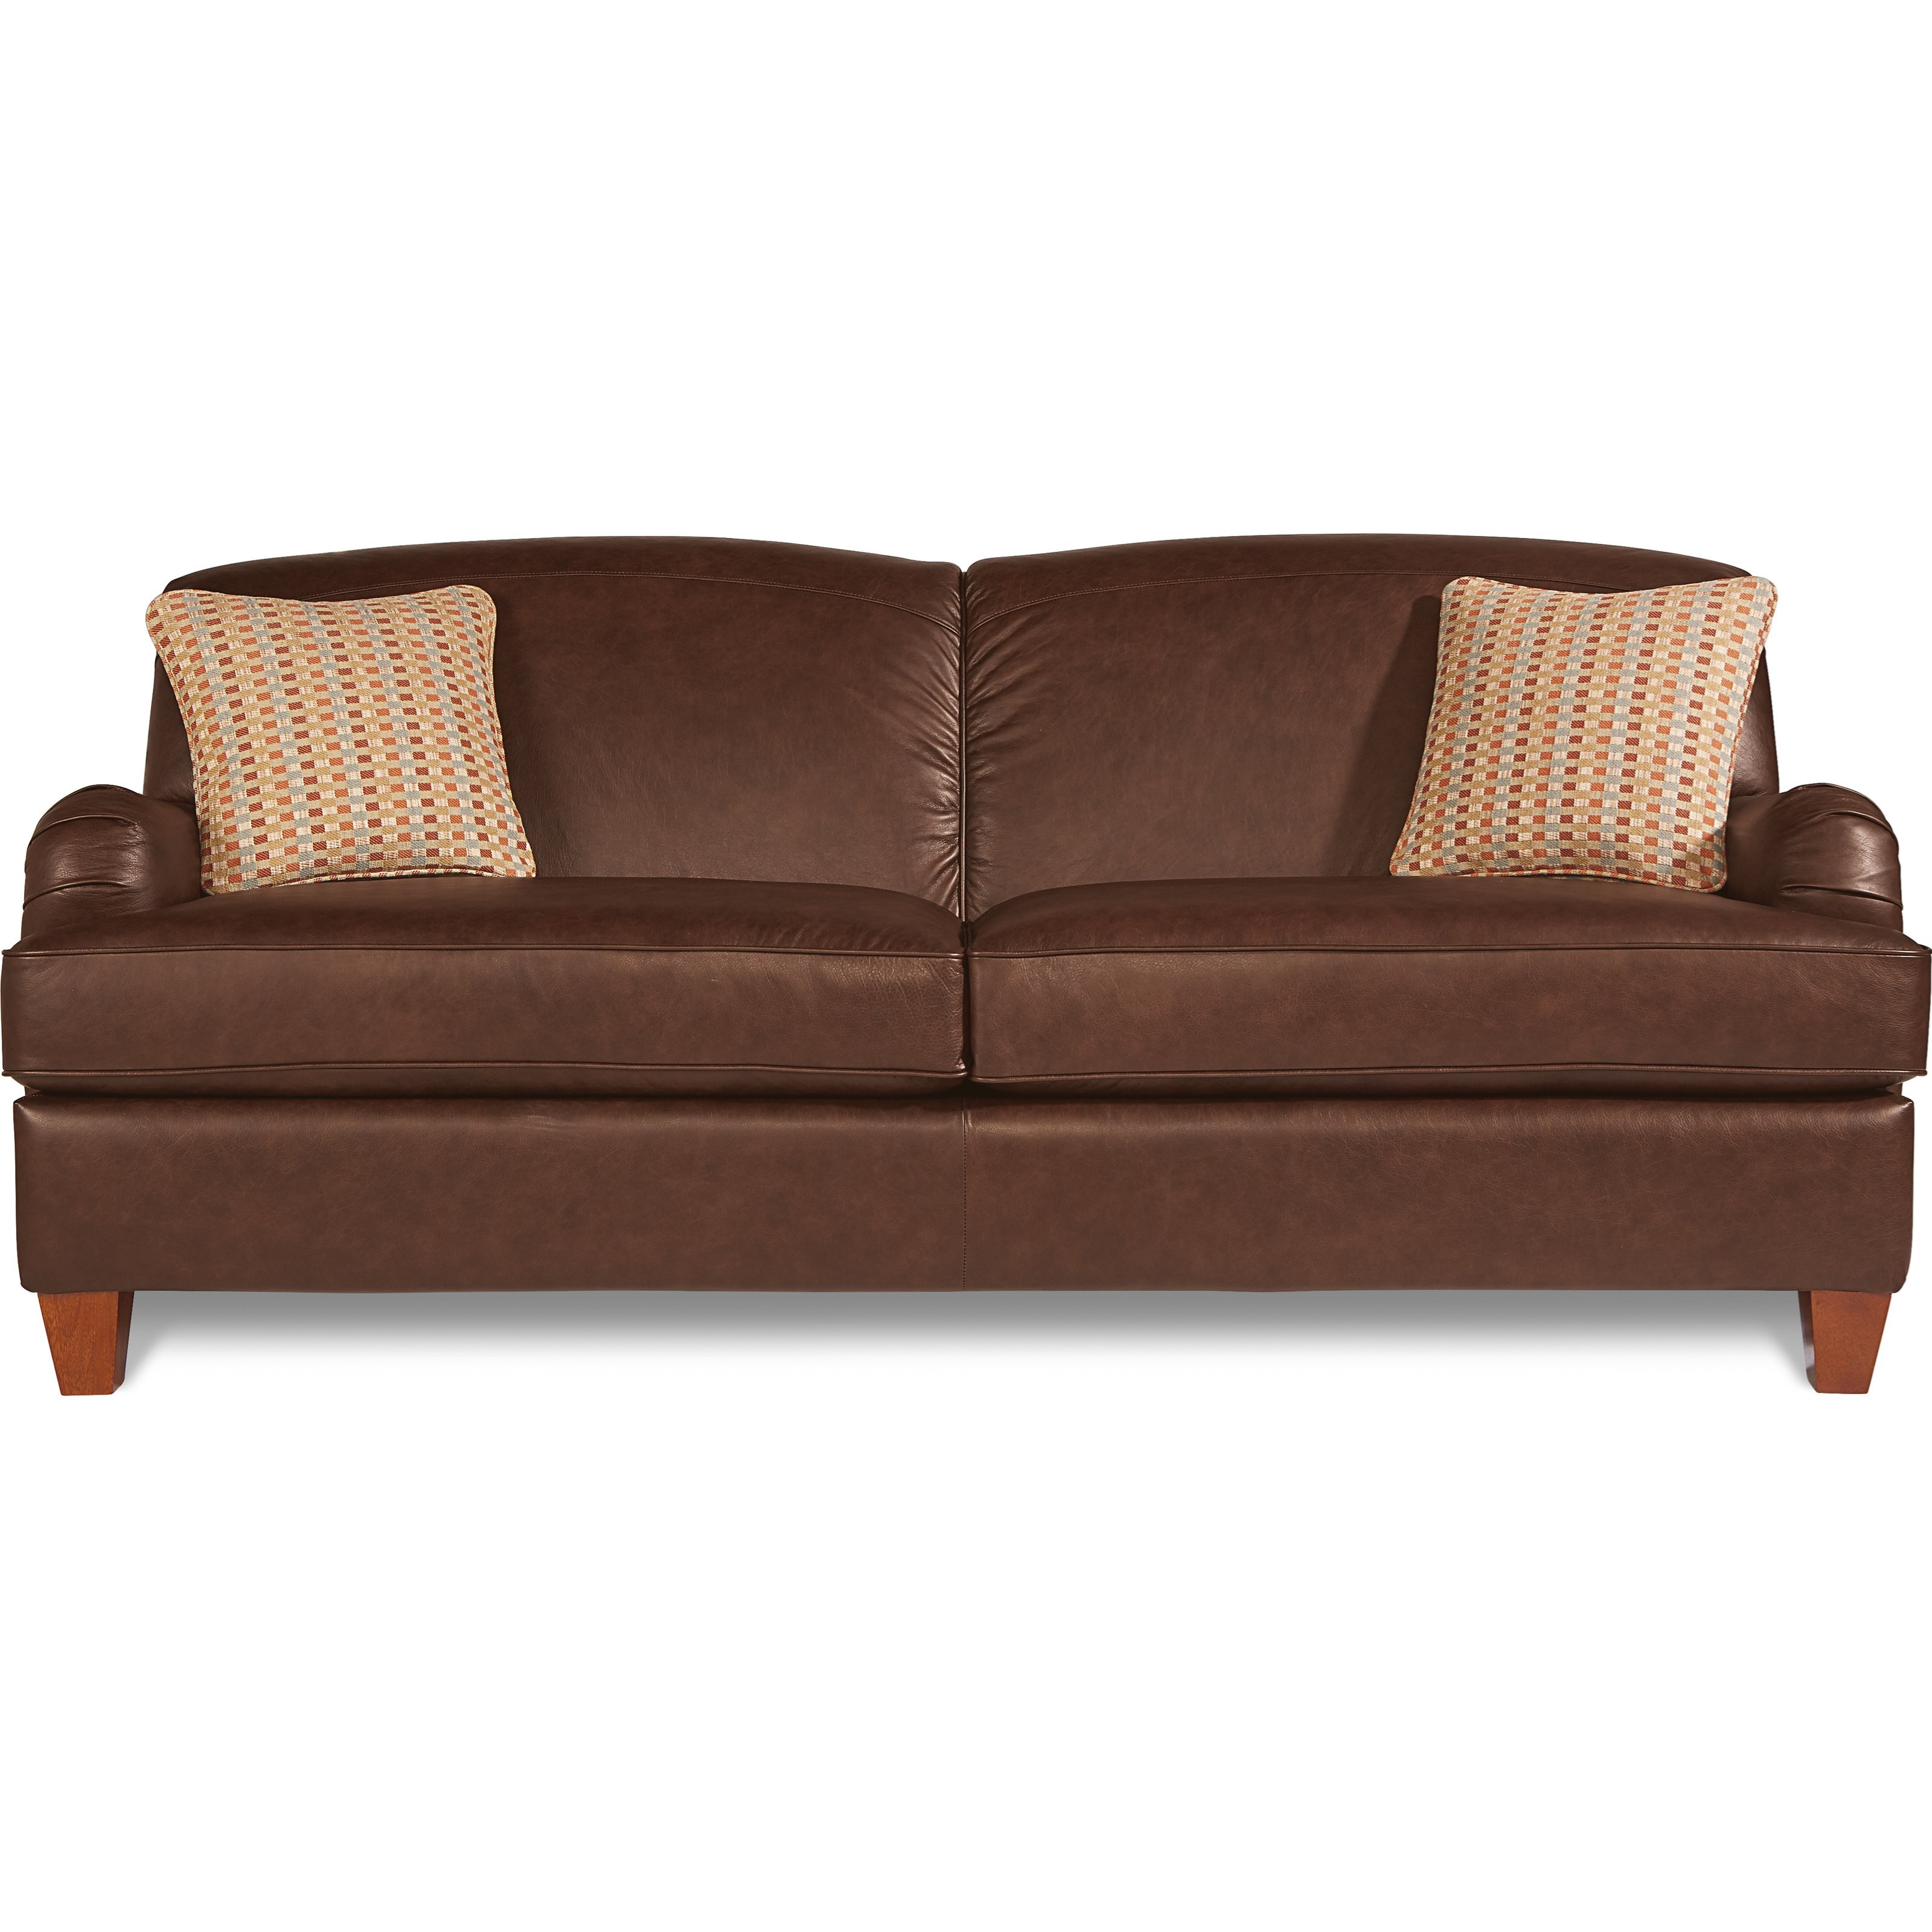 La z boy york 610656 traditional sofa with premier comfortcore cushions gill brothers - Sofa york ...